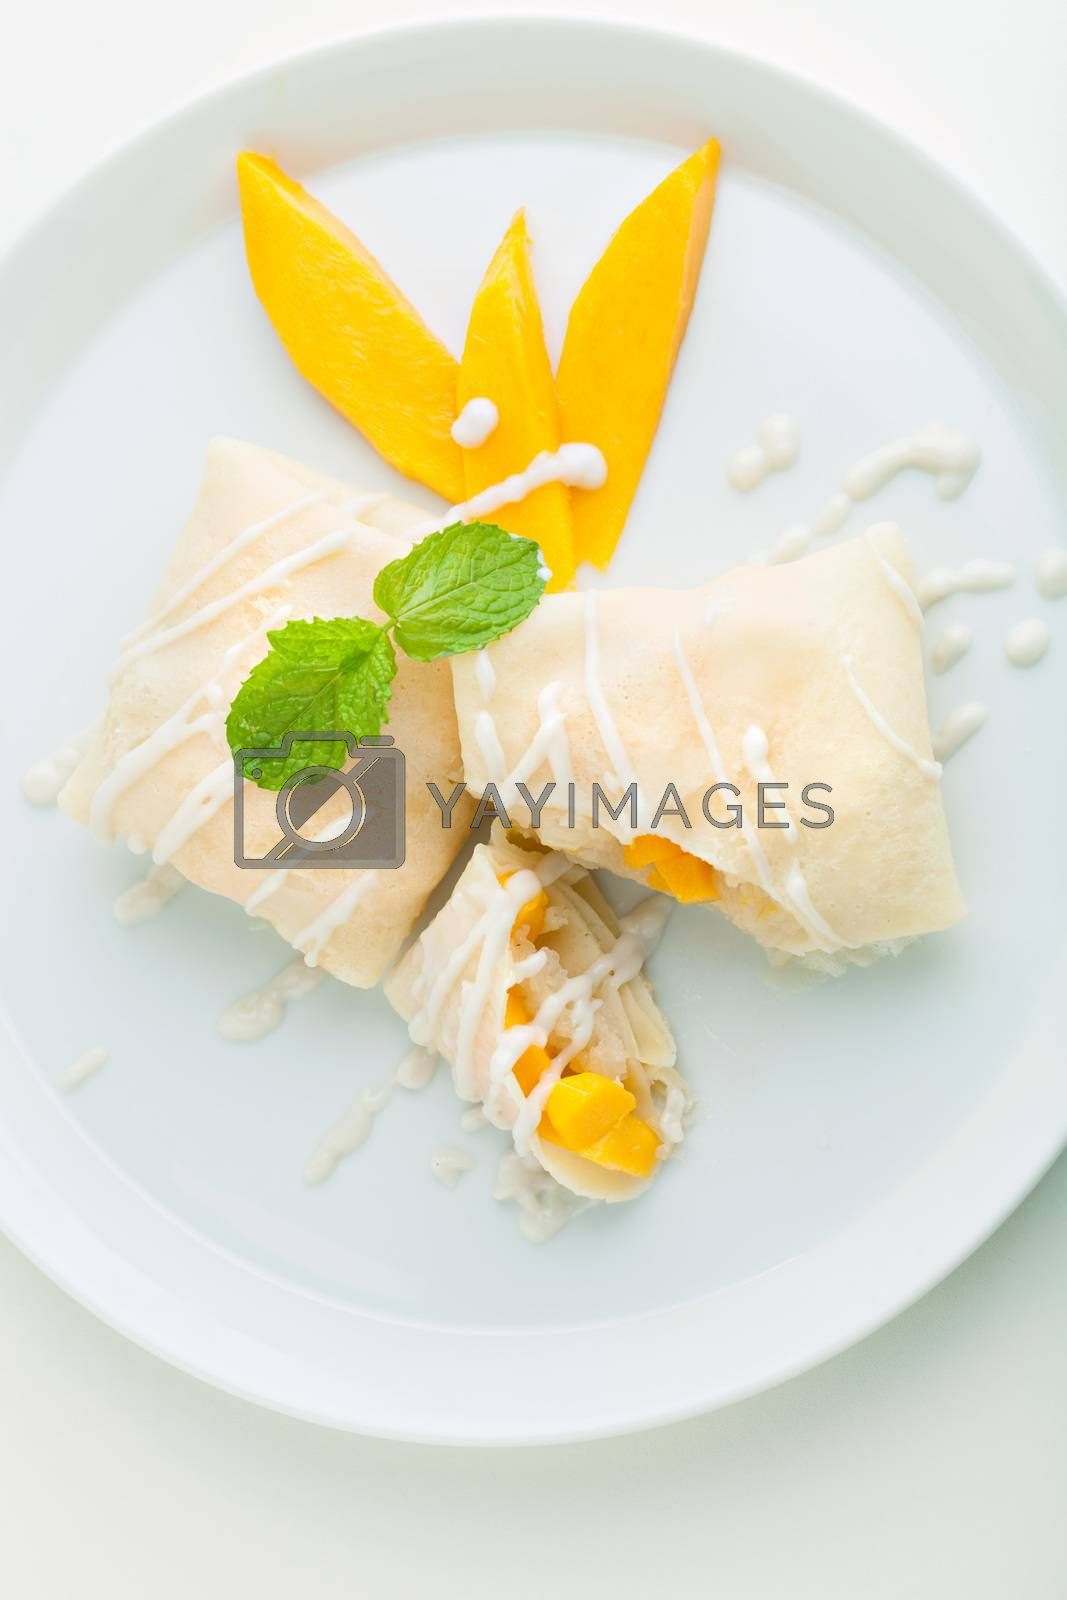 Thai Dessert Crepes by graficallyminded